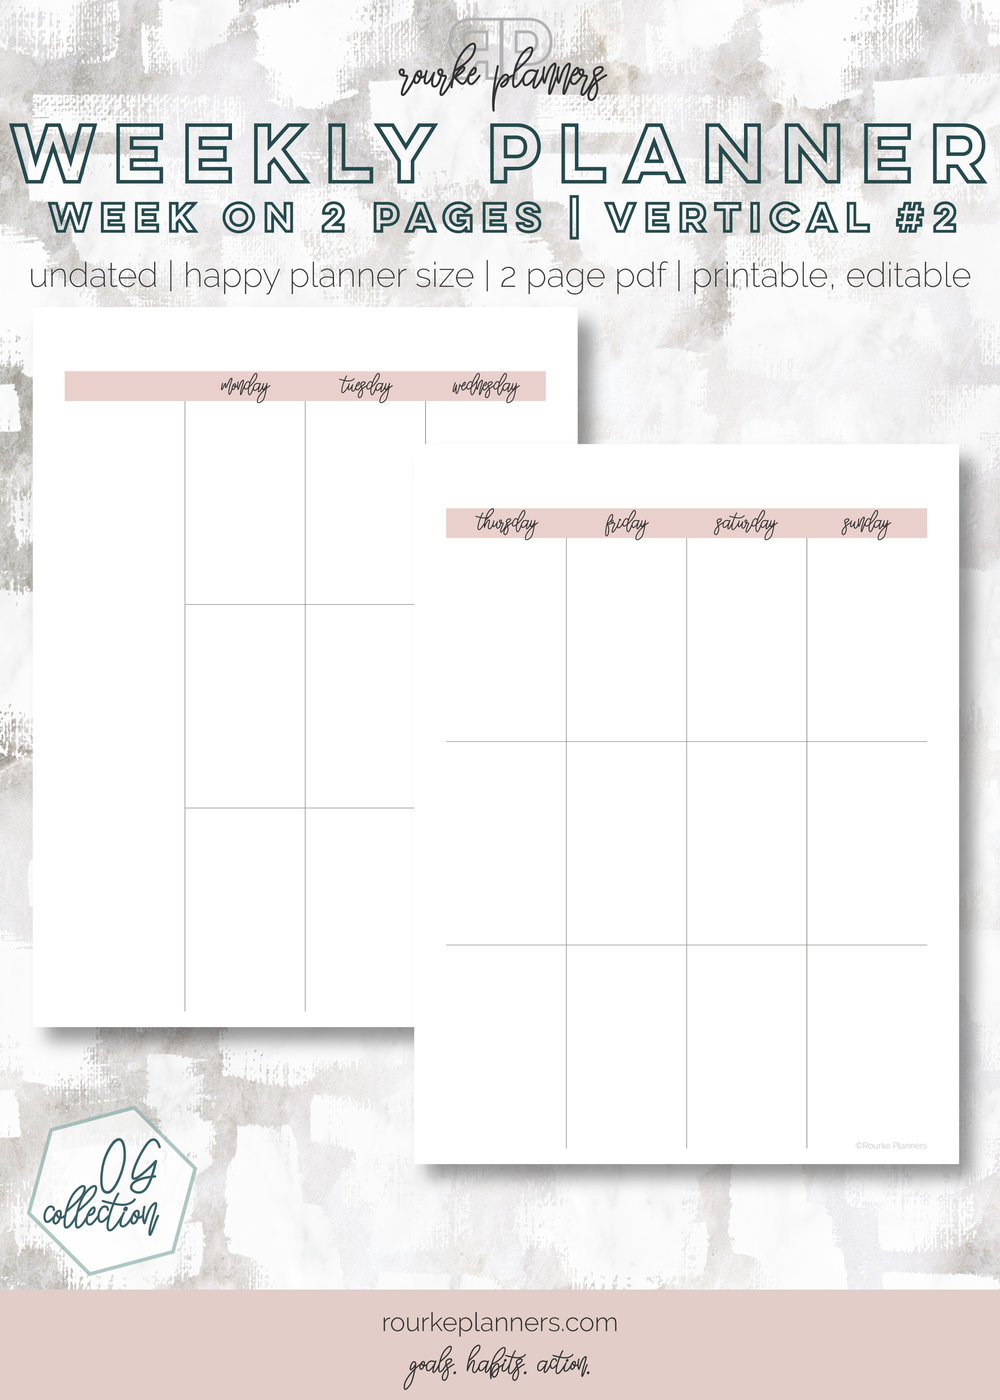 Weekly Vertical Planner #2 | Happy Planner Size, OG Style, Undated | Rourke Planners